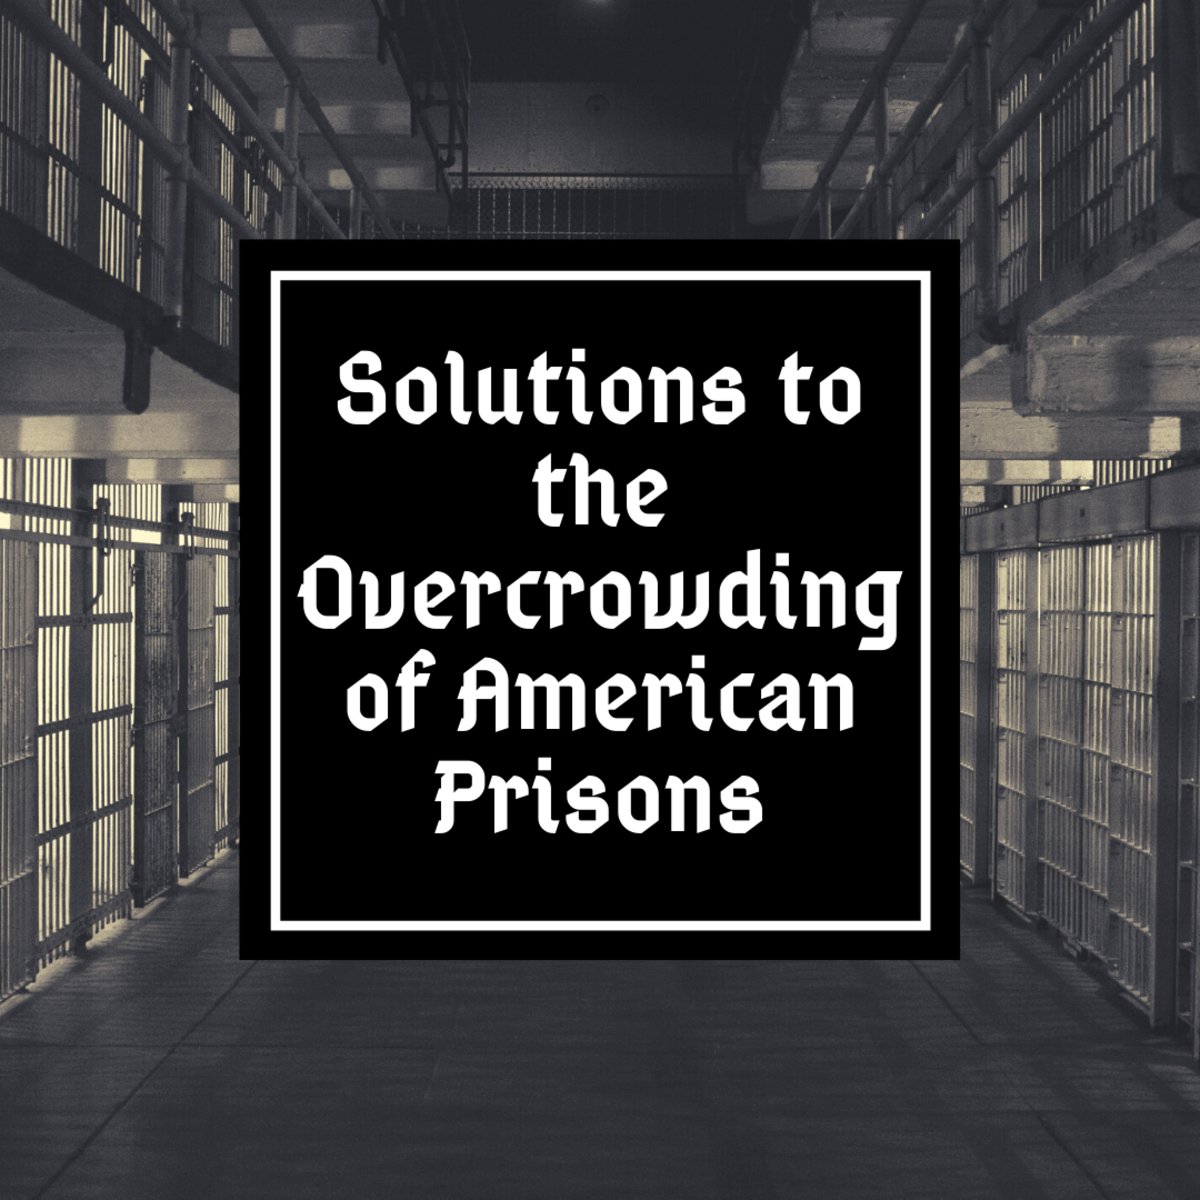 America has a serious prison problem, and we need to get serious about it.